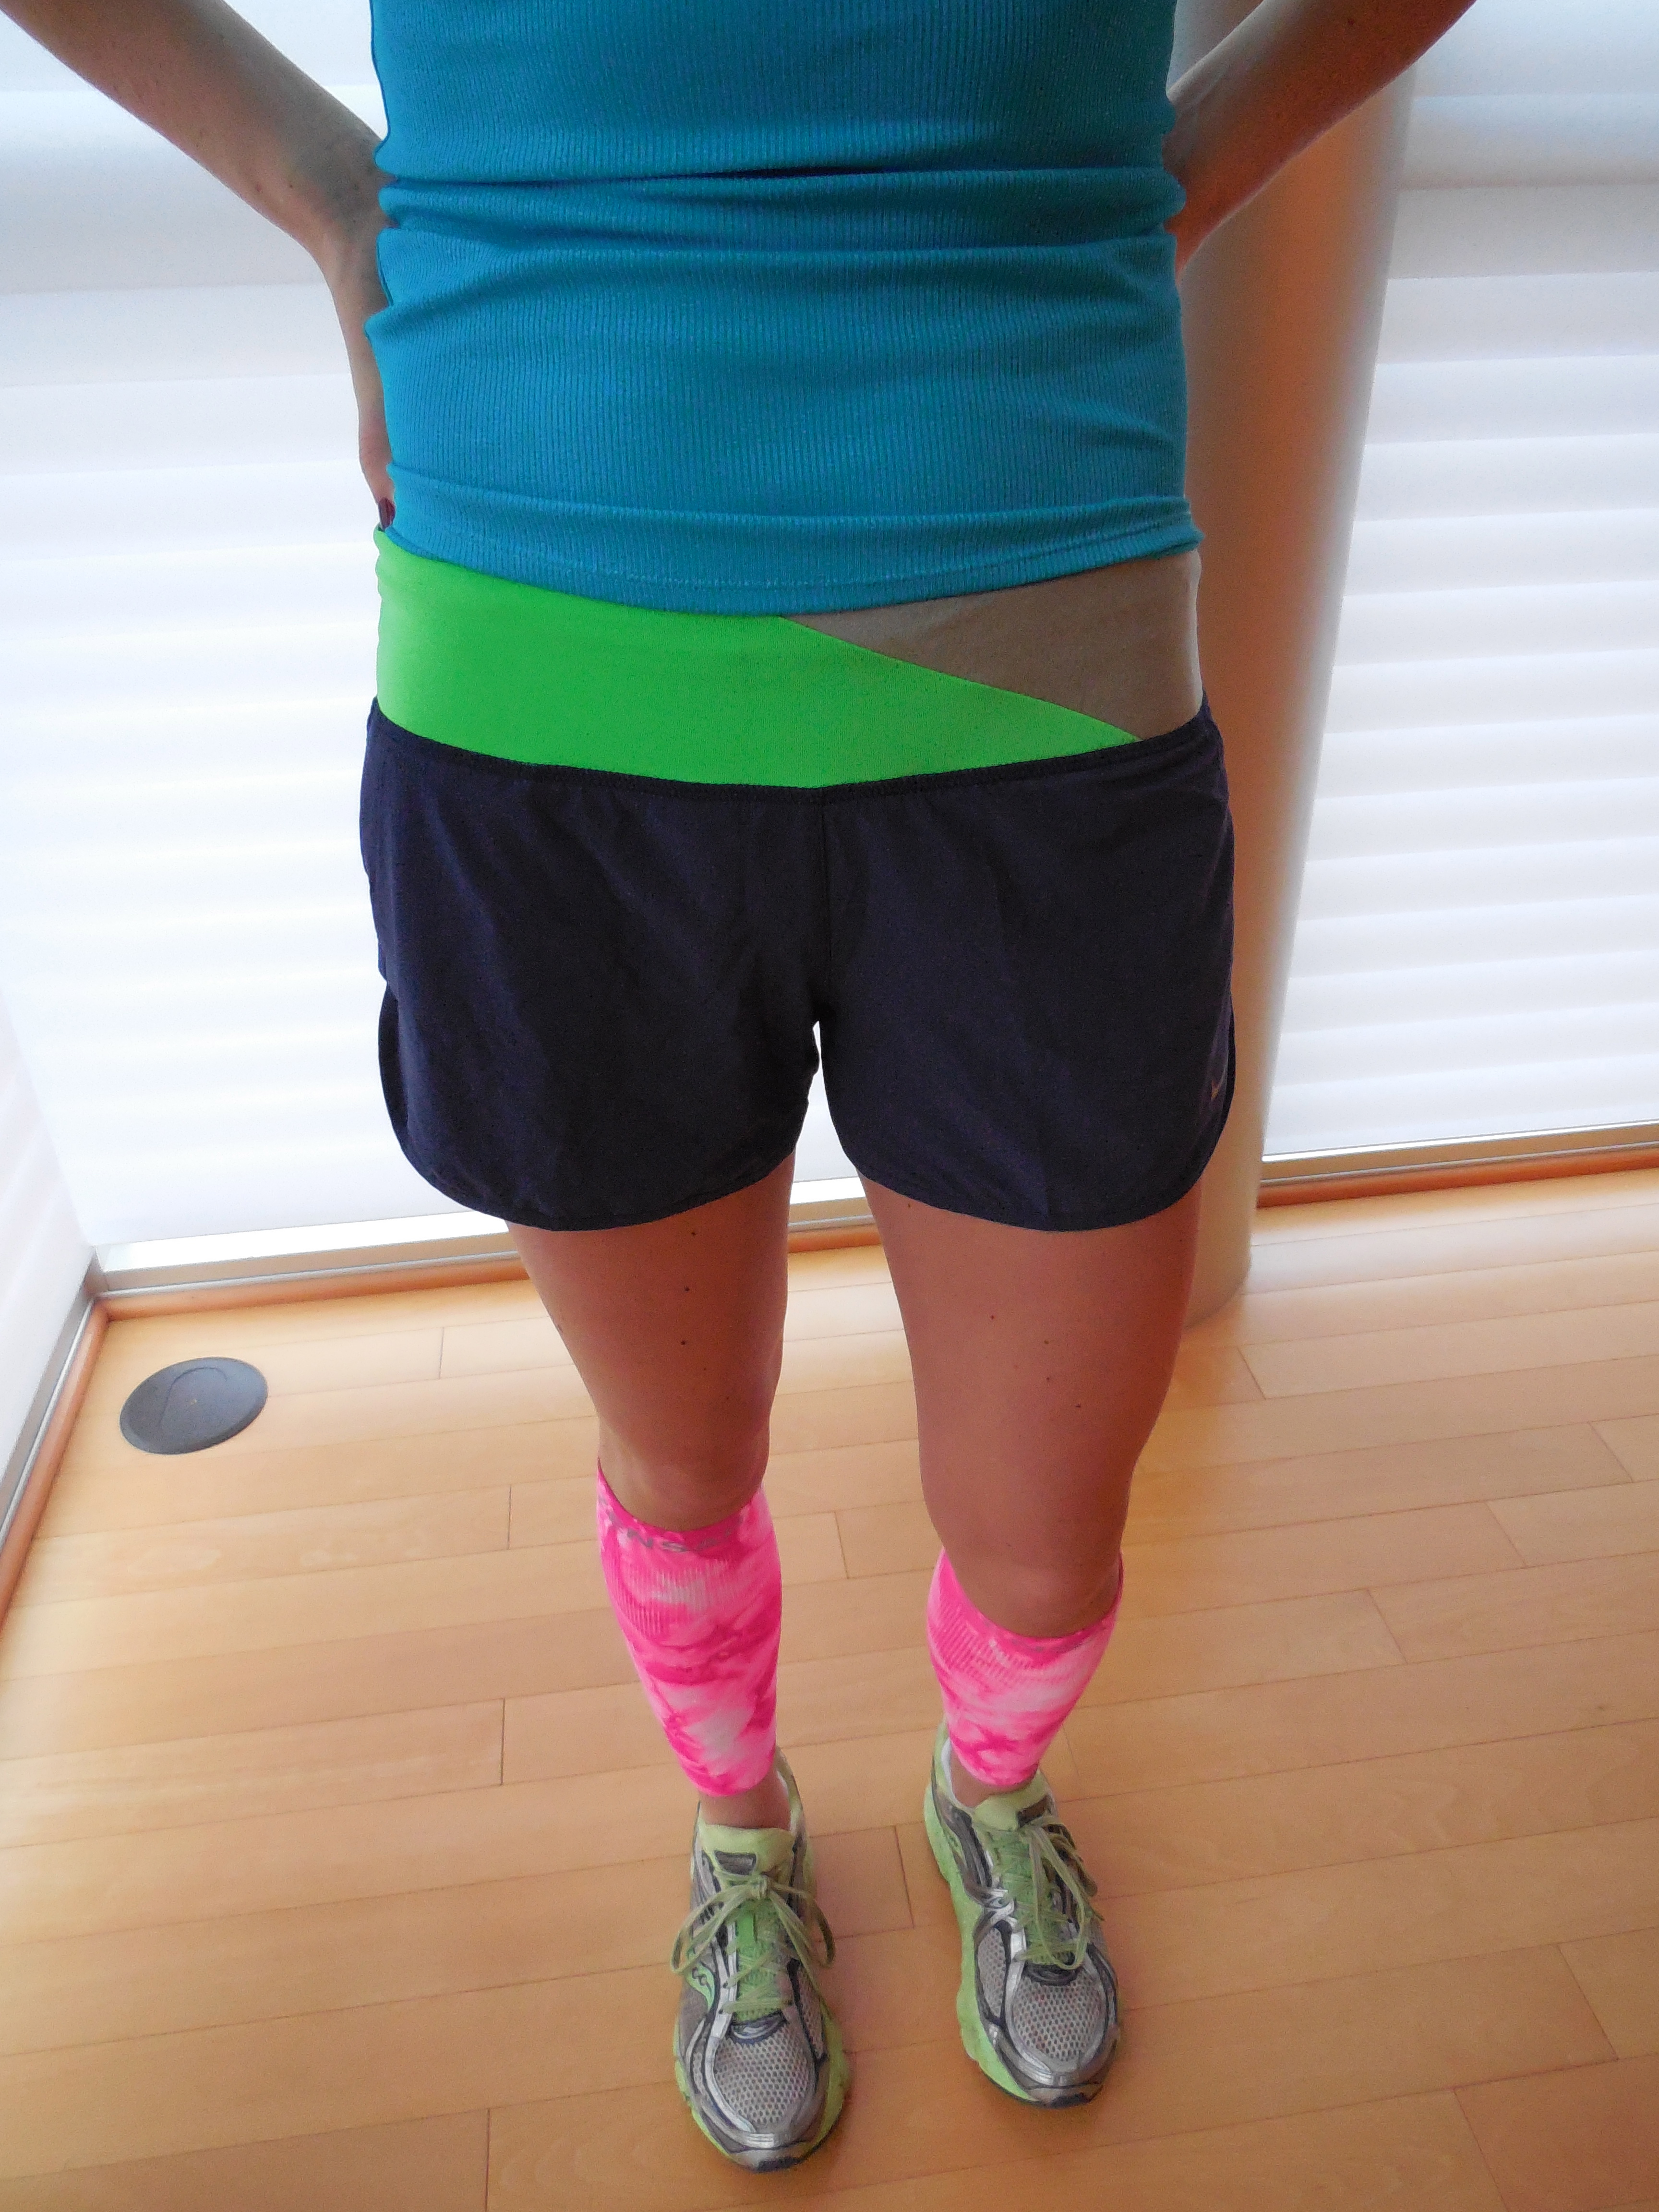 af766fde853f1 Nike Rival Running Shorts Review | married and marathoning